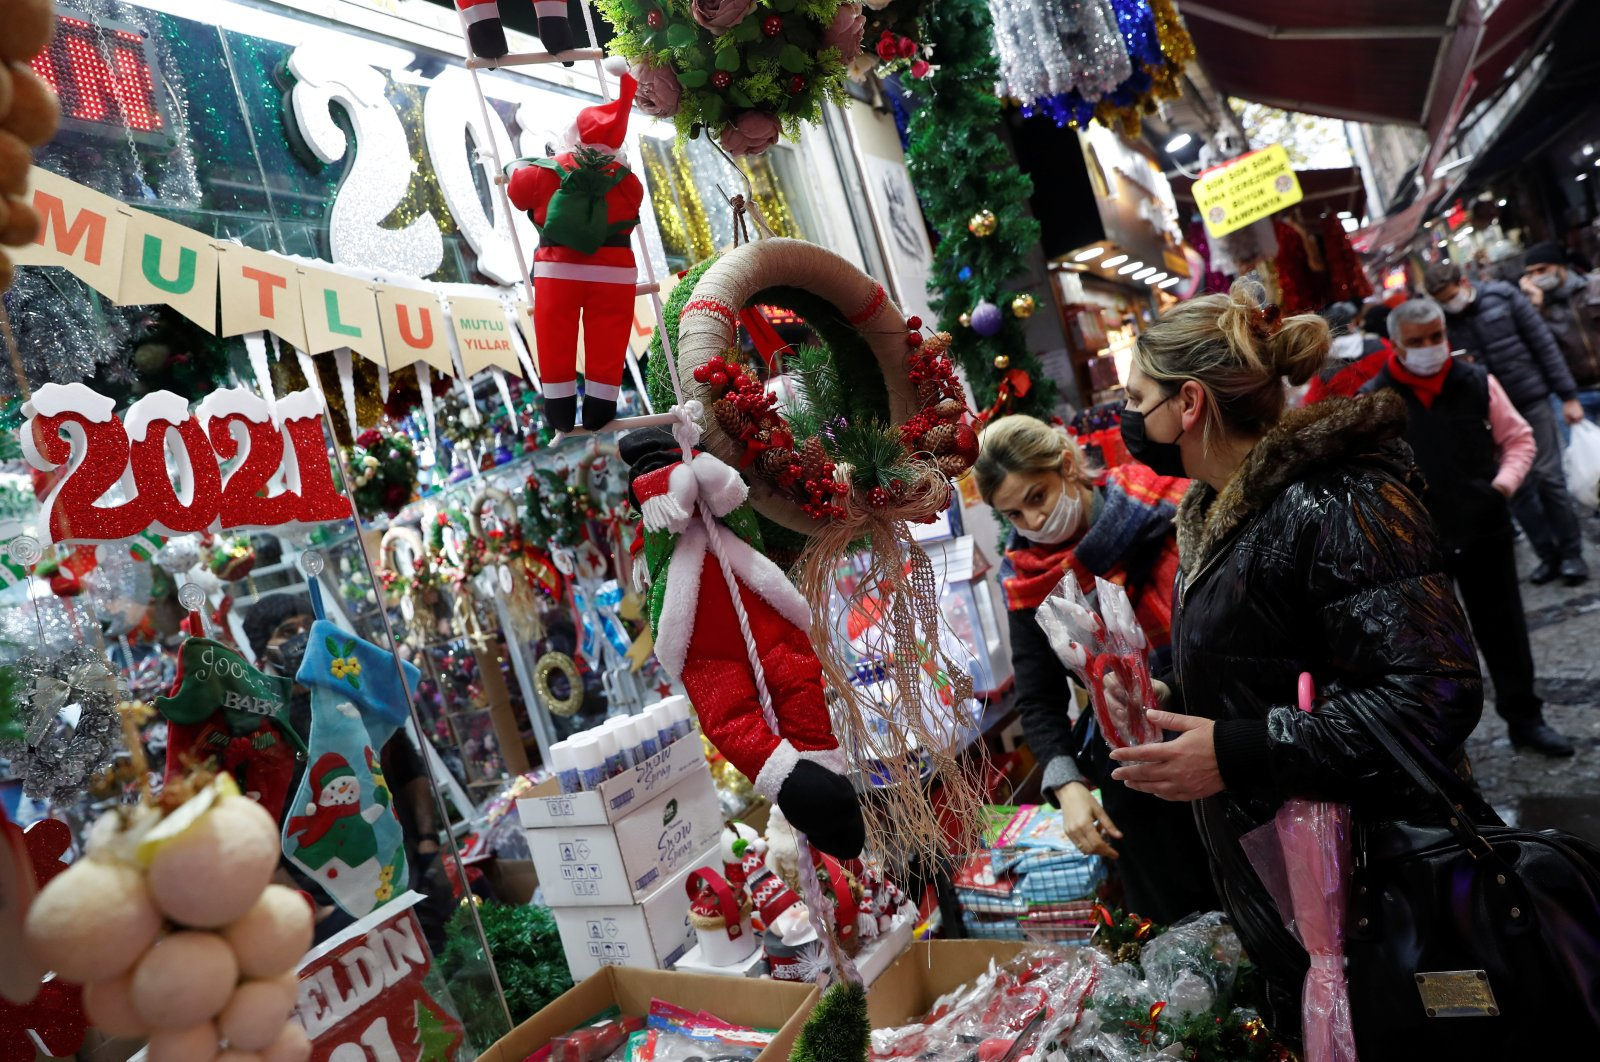 Women wearing protective face masks peruse a store selling Christmas and New Year ornaments, amid the spread of COVID-19, in Istanbul, Turkey, Dec. 16, 2020. (Reuters Photo)